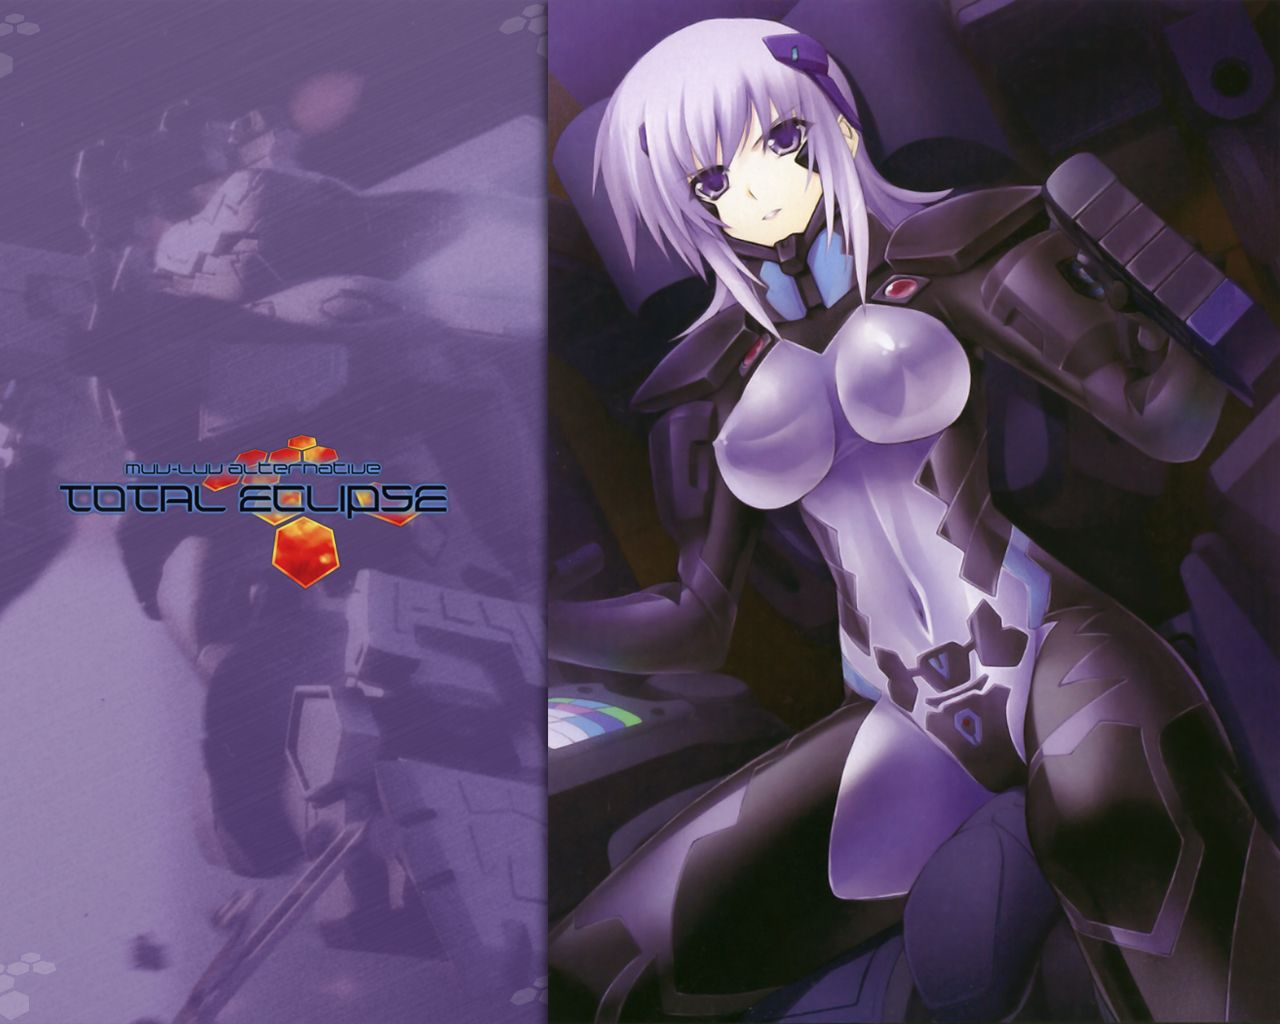 Konachan.com - 47014 iizuki_tasuku kriska_barchenowa mecha miyata_ao muv-luv_alternative total_eclipse